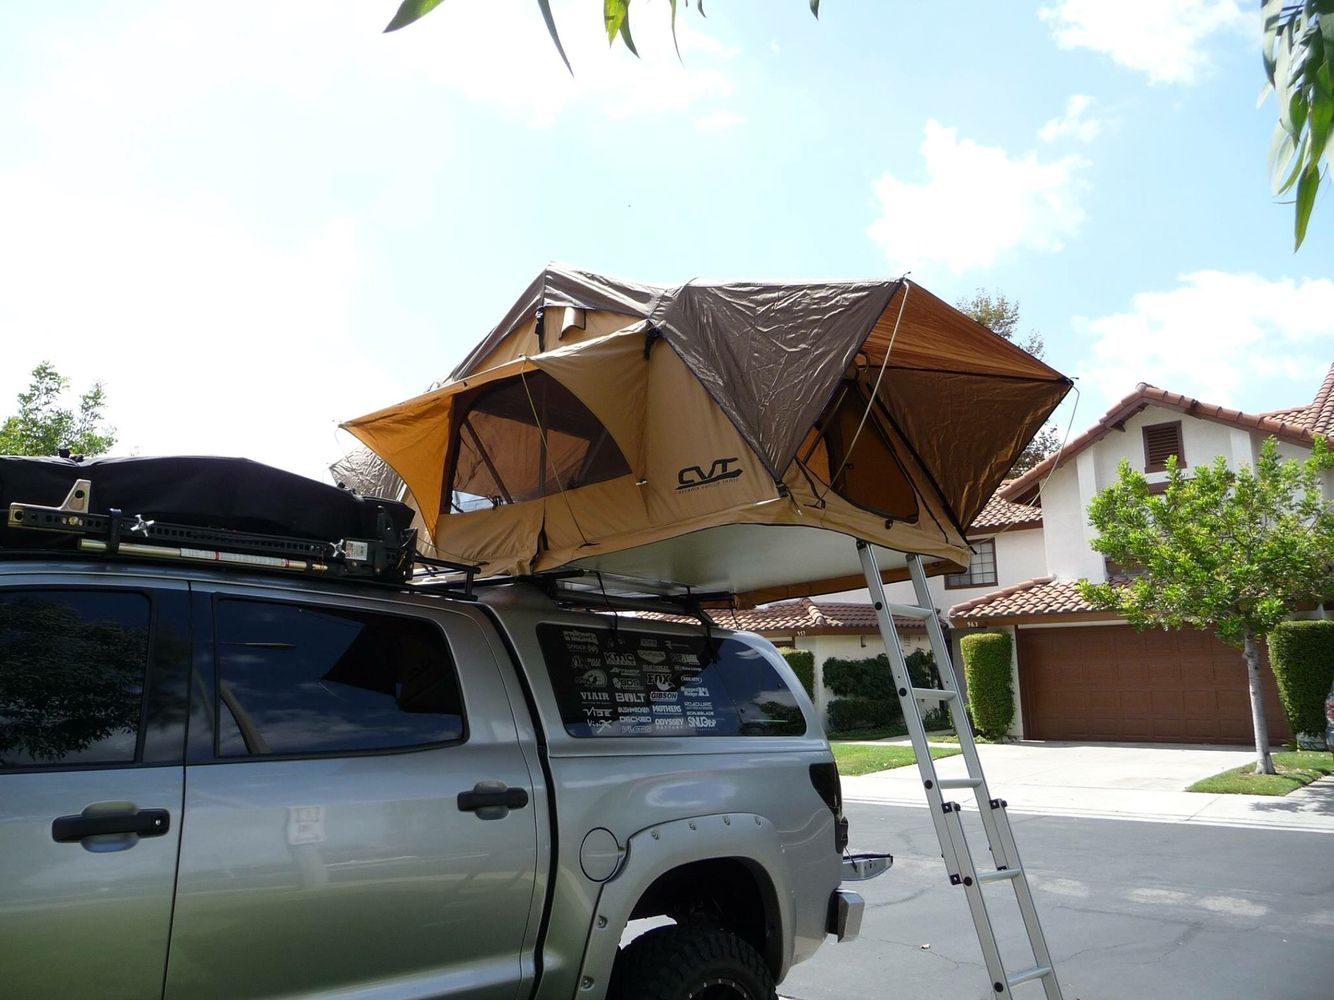 Roof Top Tent & Roof Top Tent | Mr. T 2008 Toyota Tundra Truck Build | Pinterest ...